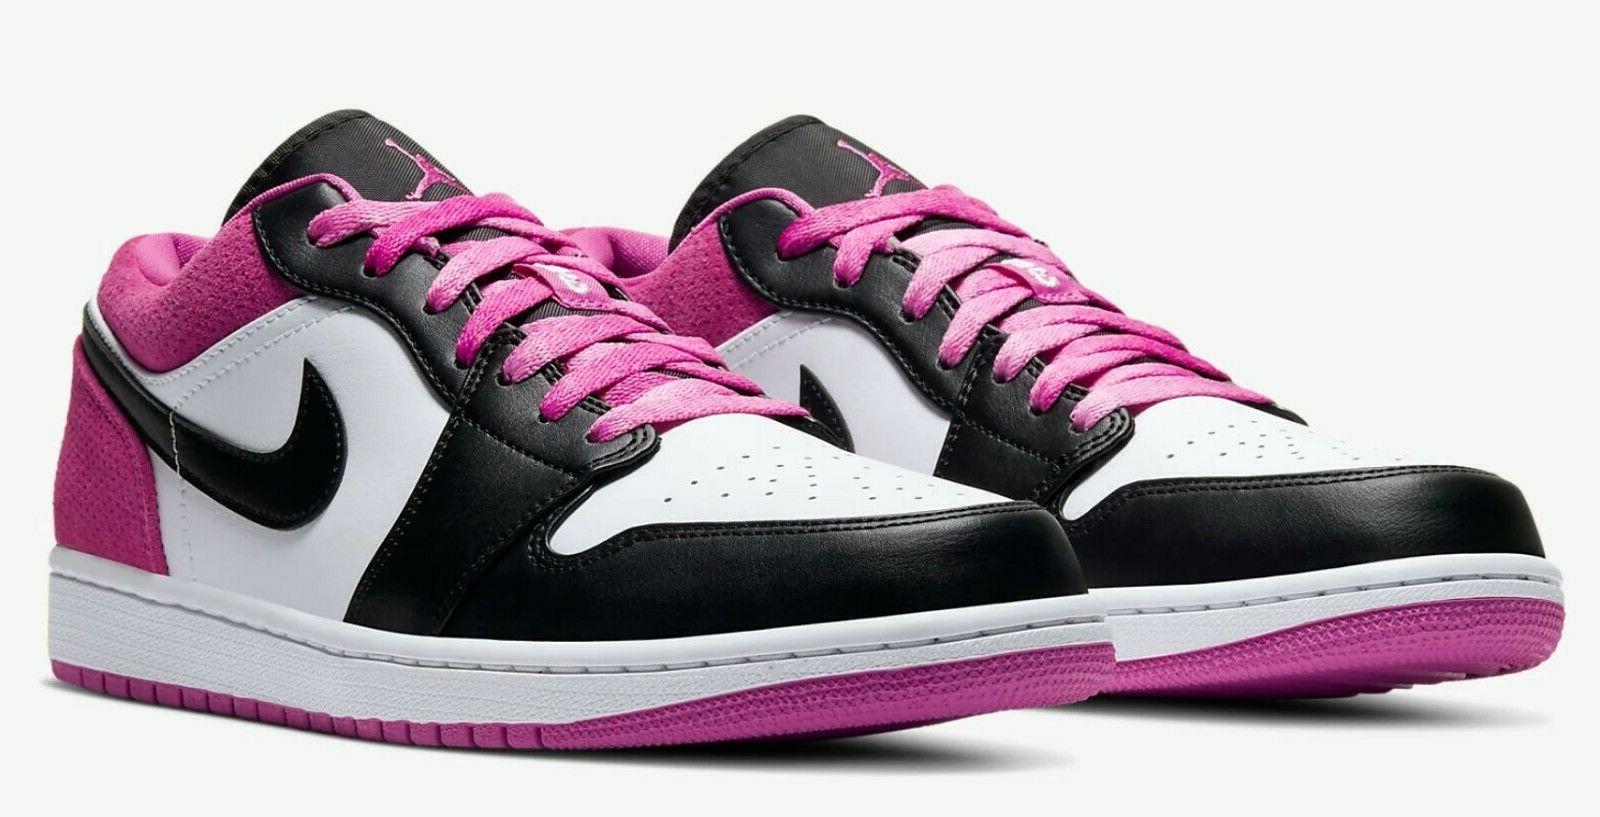 Nike Low Retro Mens Shoes Pink